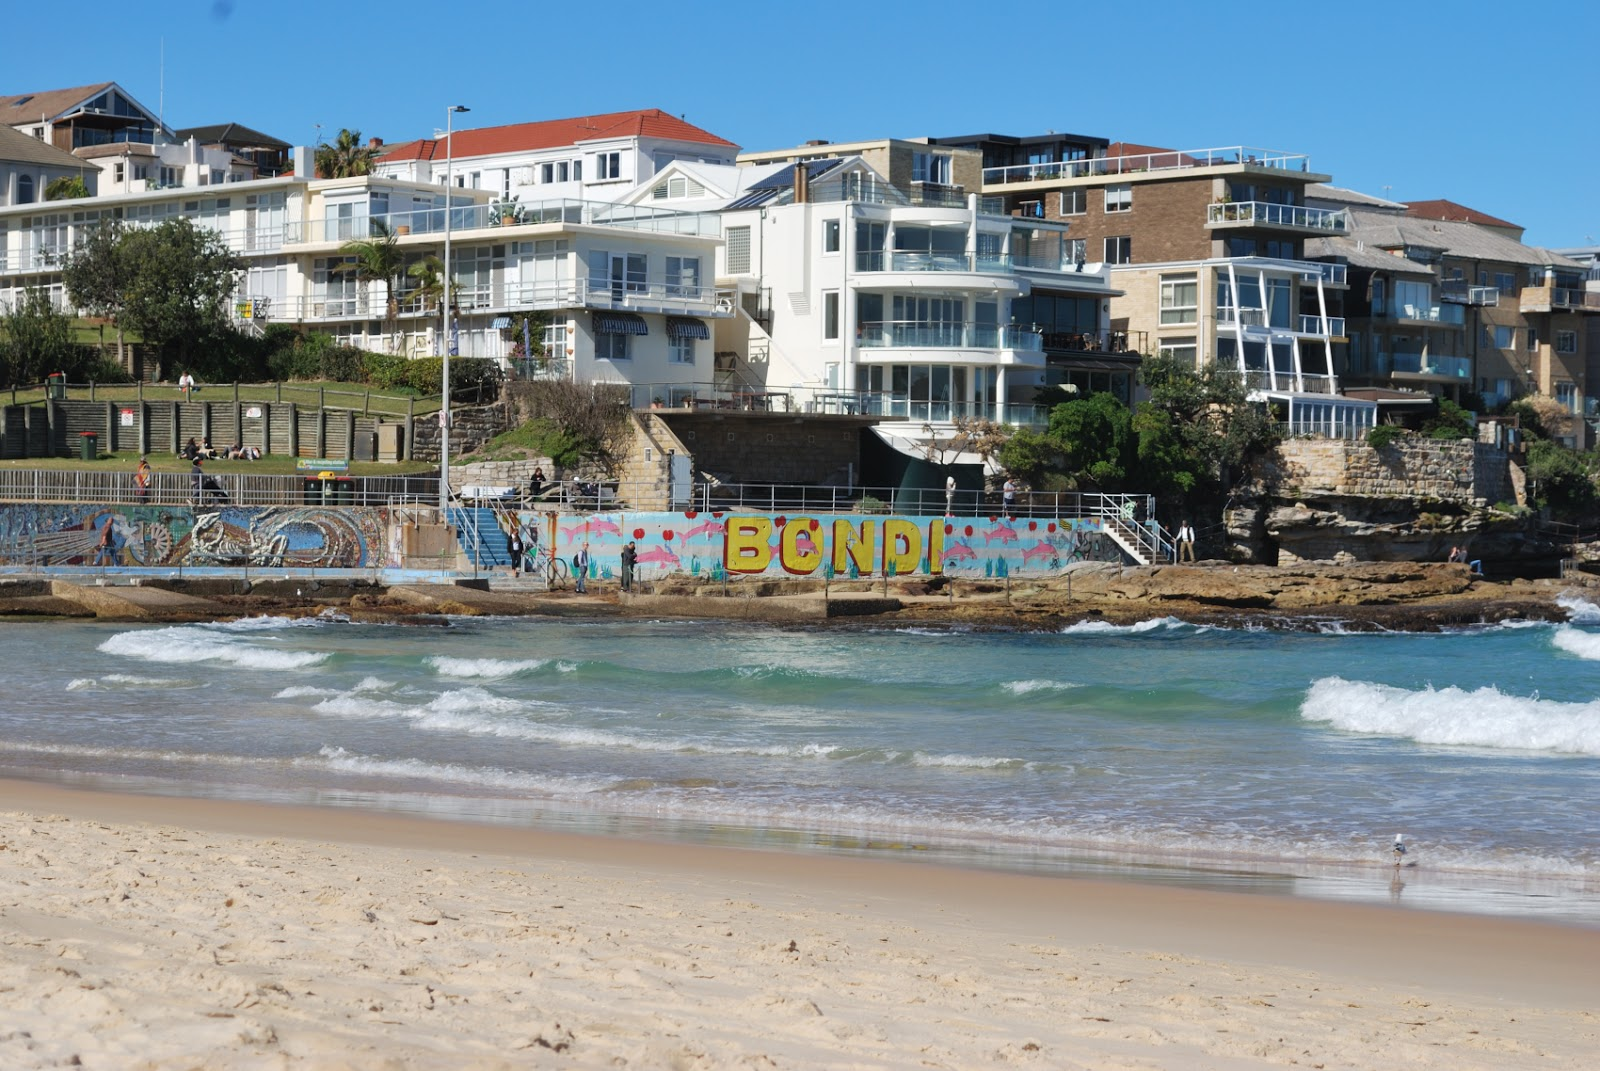 bondi beach sydney australia